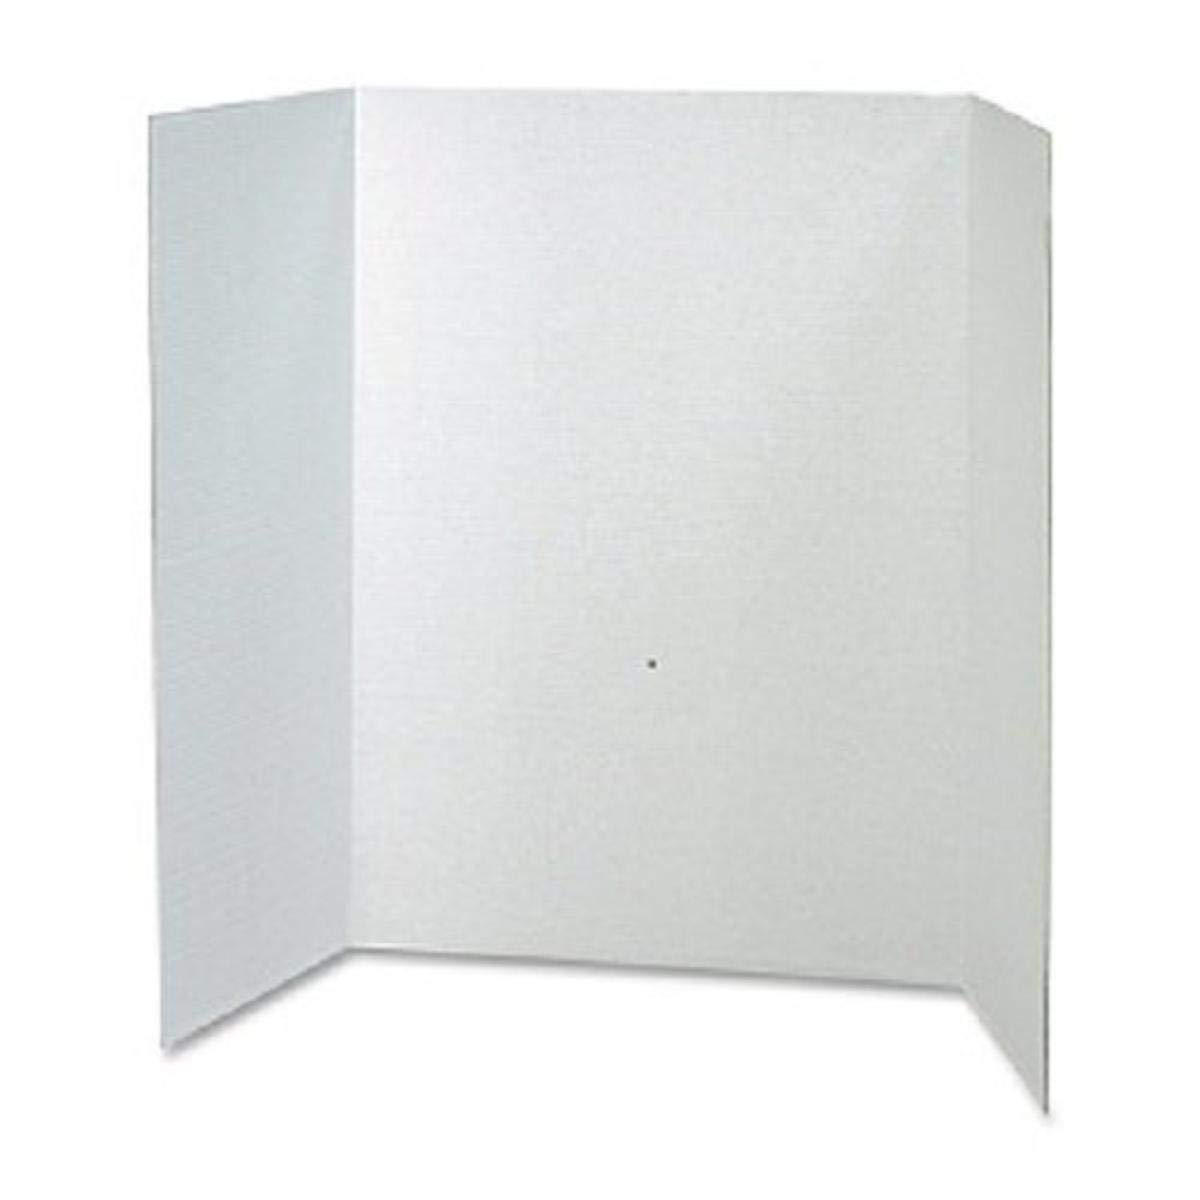 "RiteCo 22128 Tri-fold Display/Presentation Boards, 40""x28"", White, (Pack of 30)"